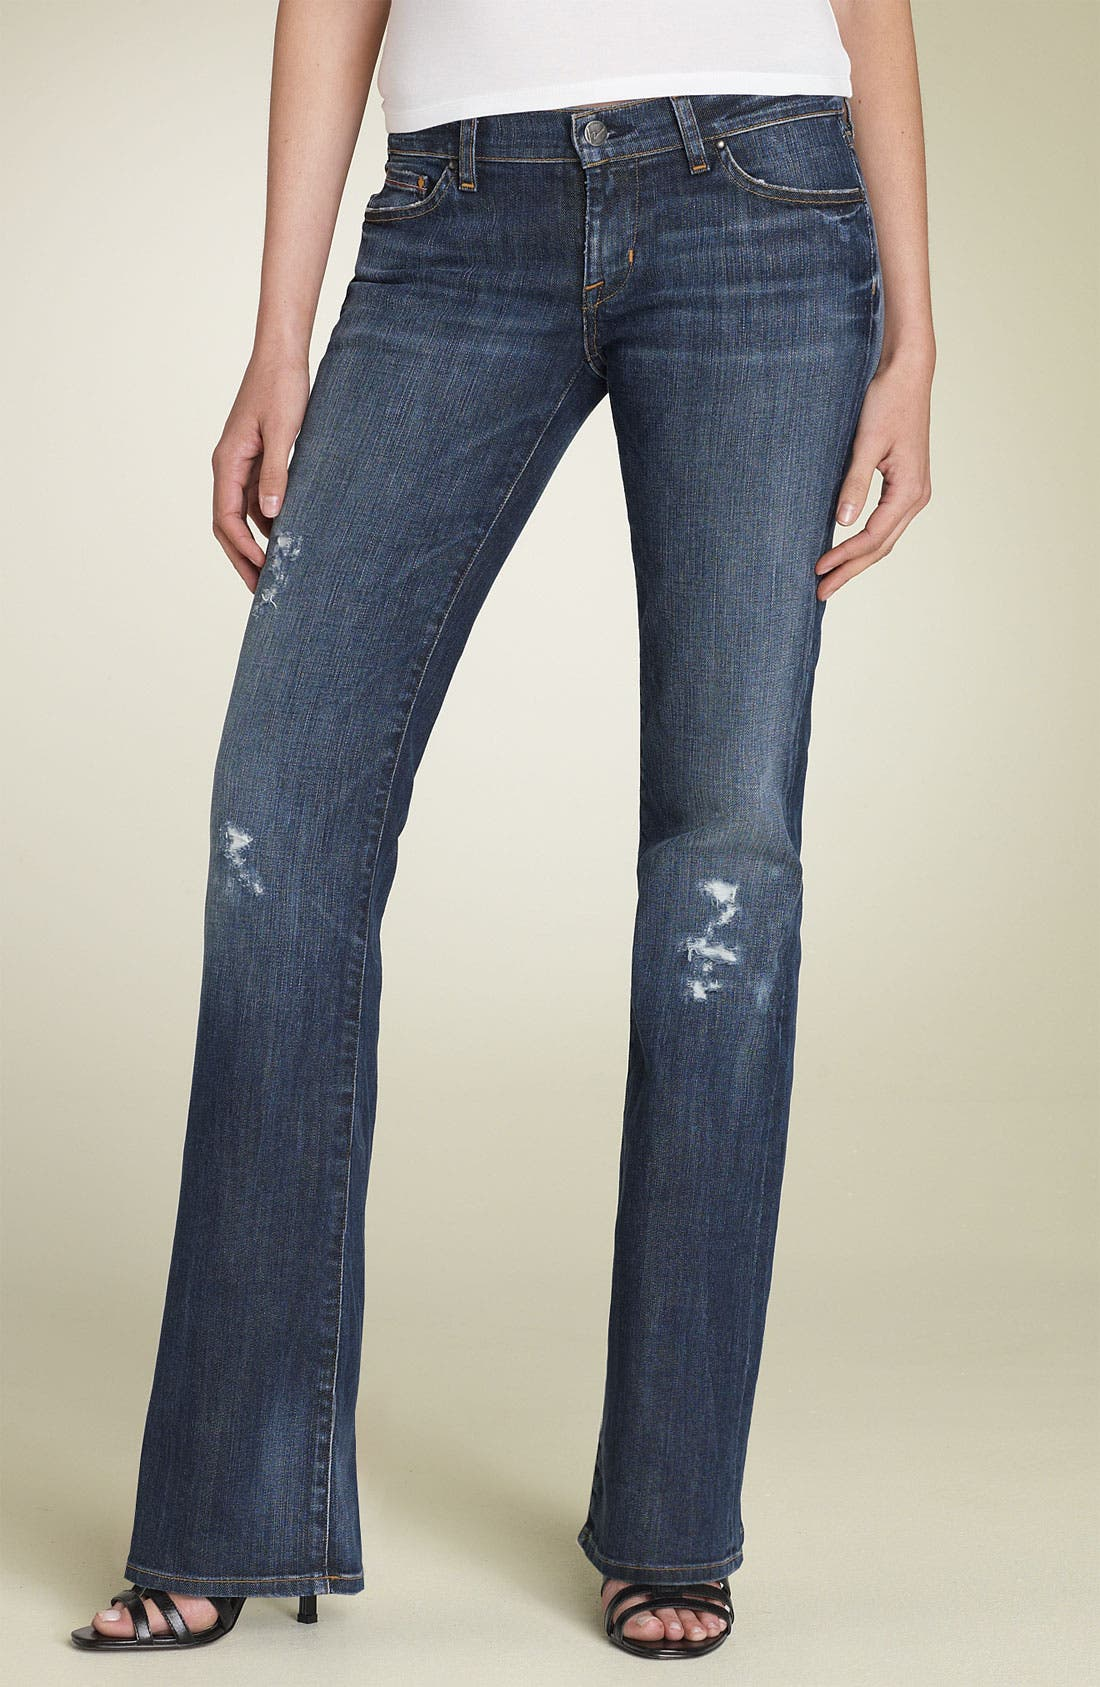 Alternate Image 1 Selected - Citizens of Humanity 'Kelly' Bootcut Stretch Jeans (Preferred Wash)